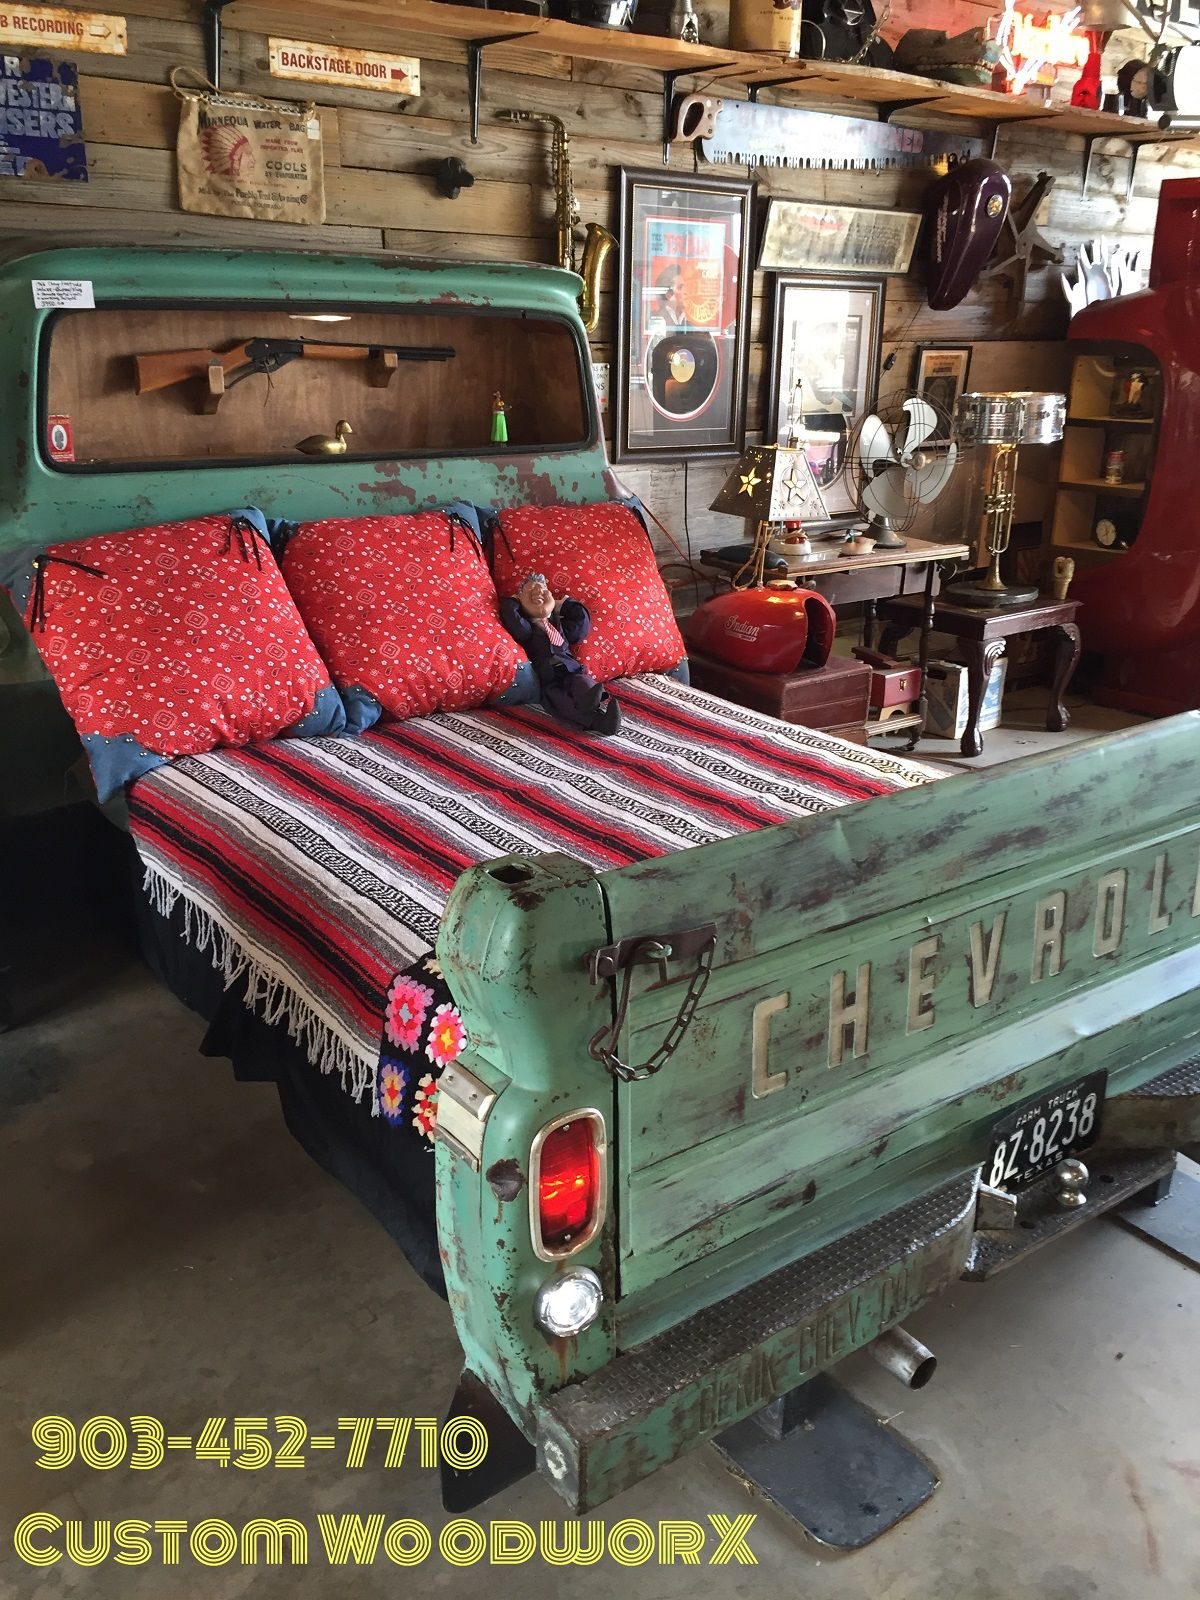 Truck Bed Bedroom: 1965 Chevy C-10 Truck Bed Chevy Truck Bed Shelf Unit